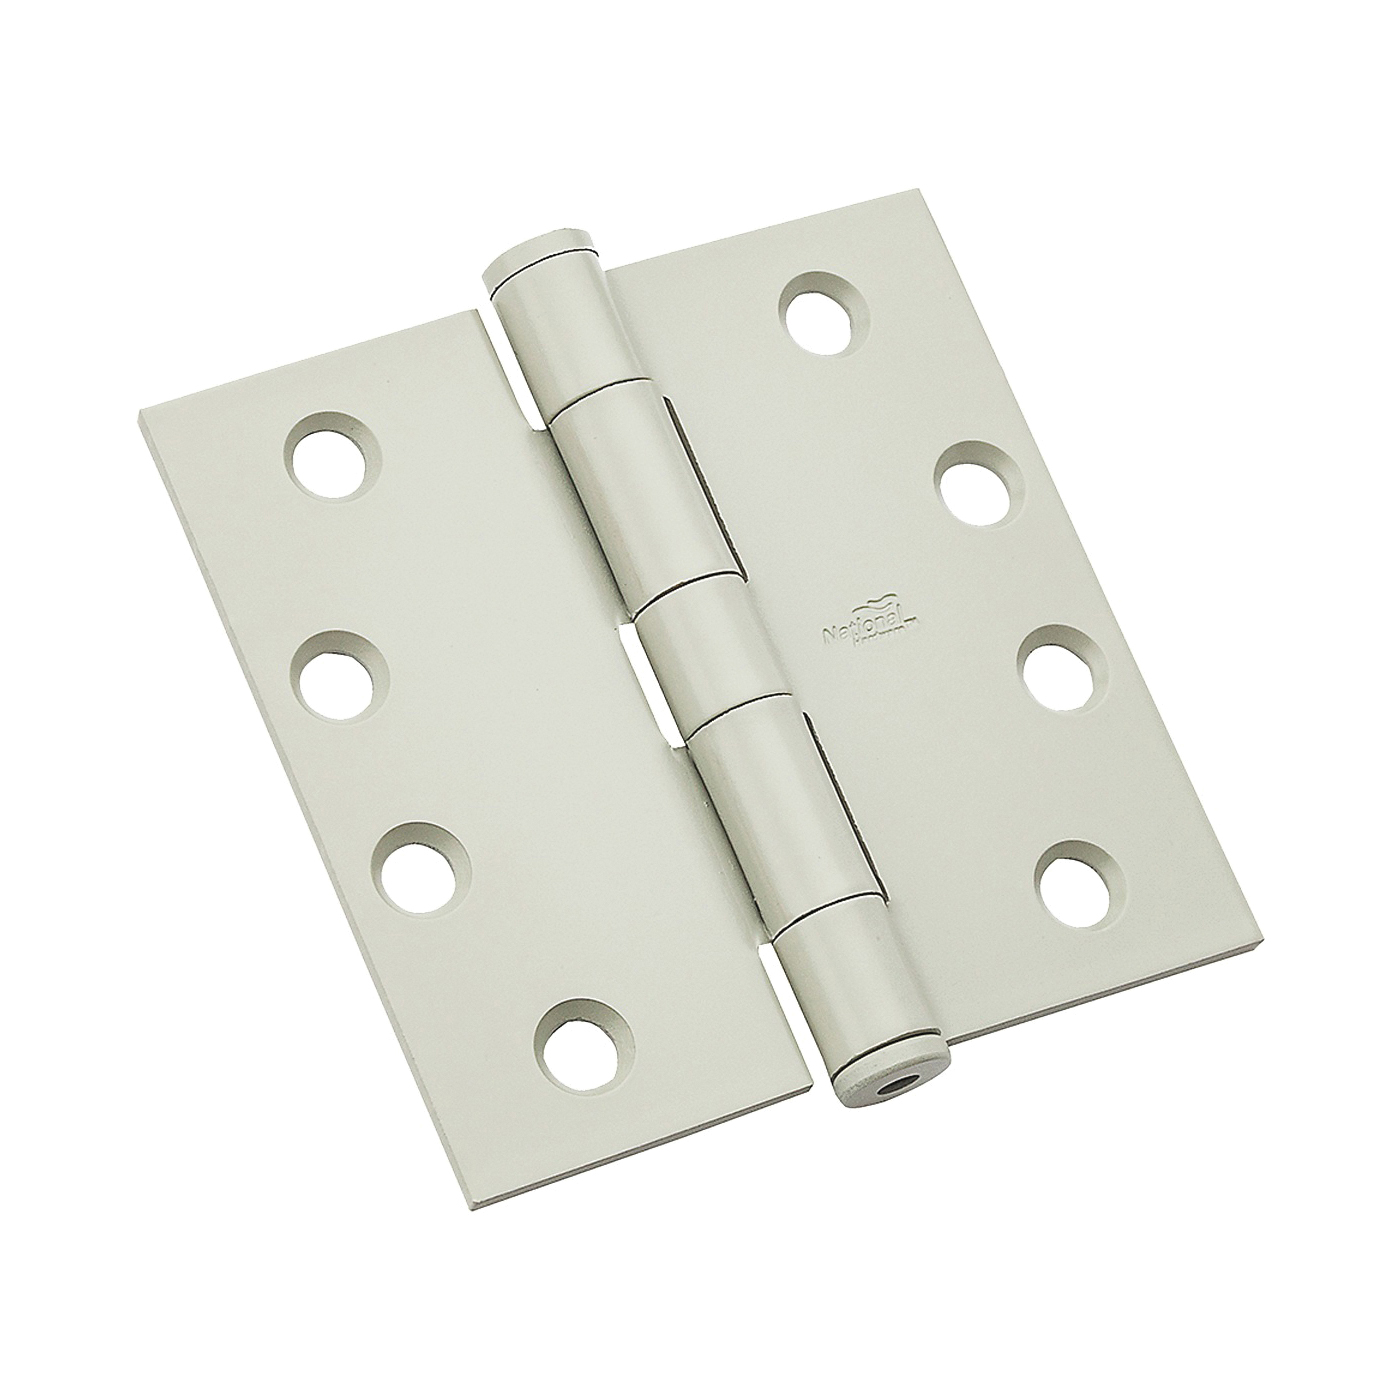 Picture of National Hardware 179 Series N236-124 Standard Weight Template Hinge, 4 in H Frame Leaf, Steel, Prime Coat, 85 lb